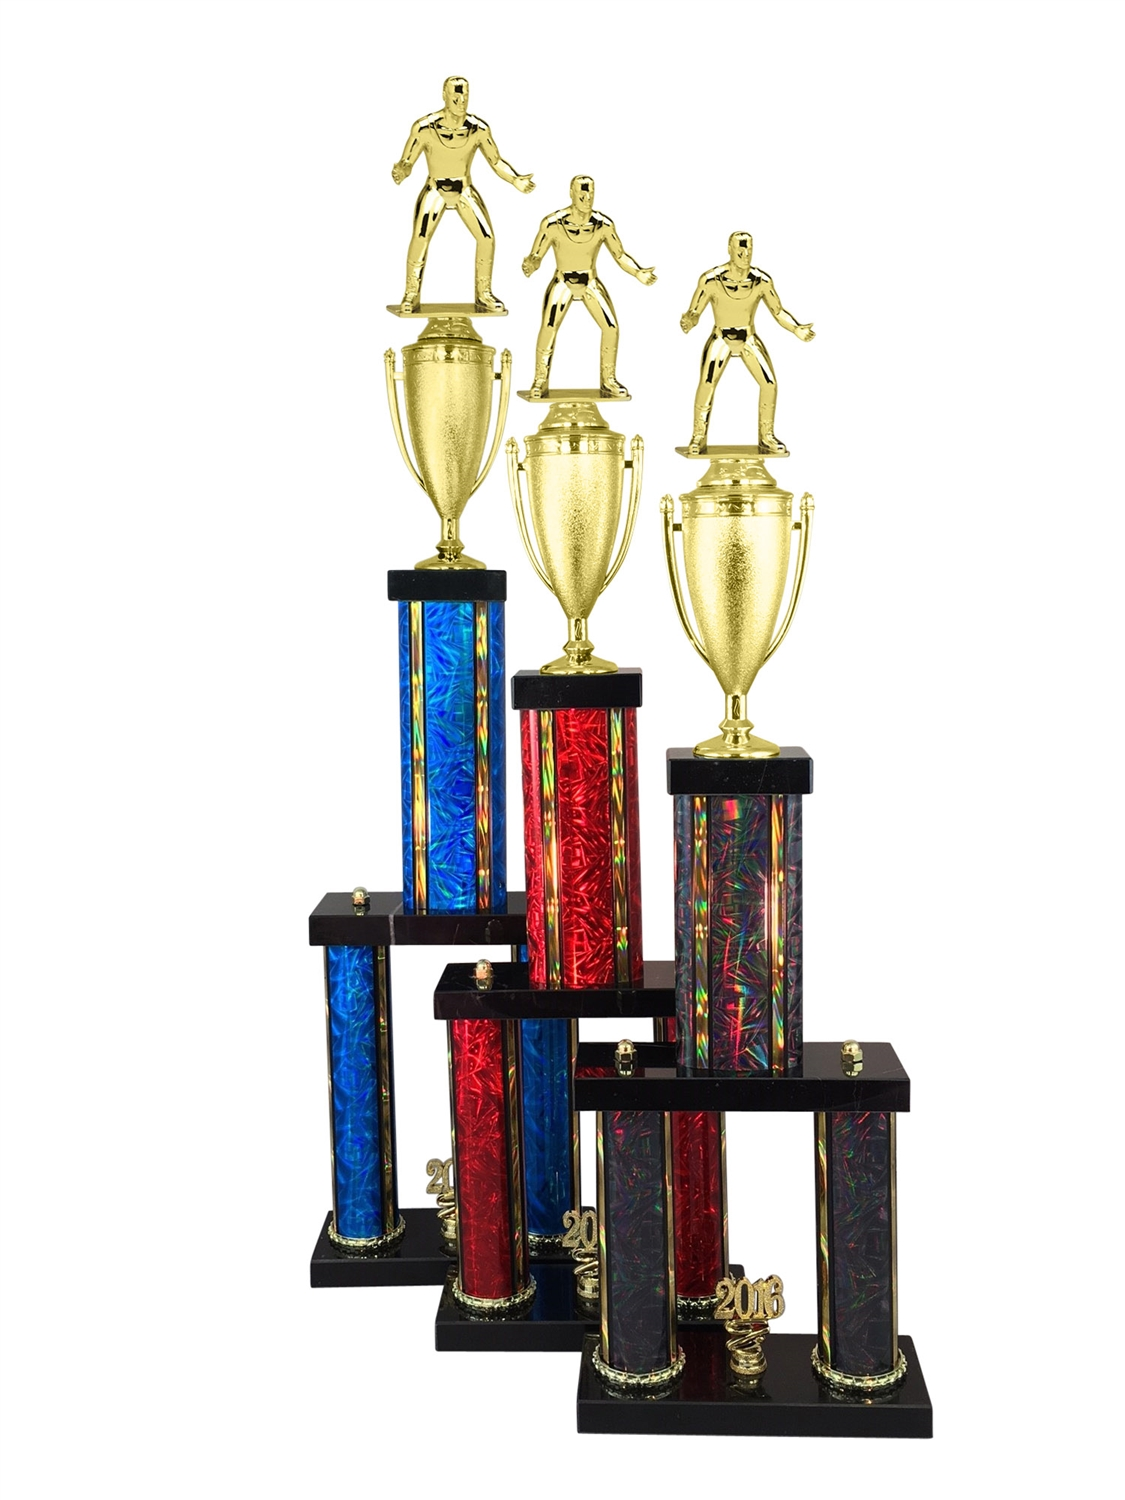 Wrestling Trophy Available in 11 Color & 6 Size Options